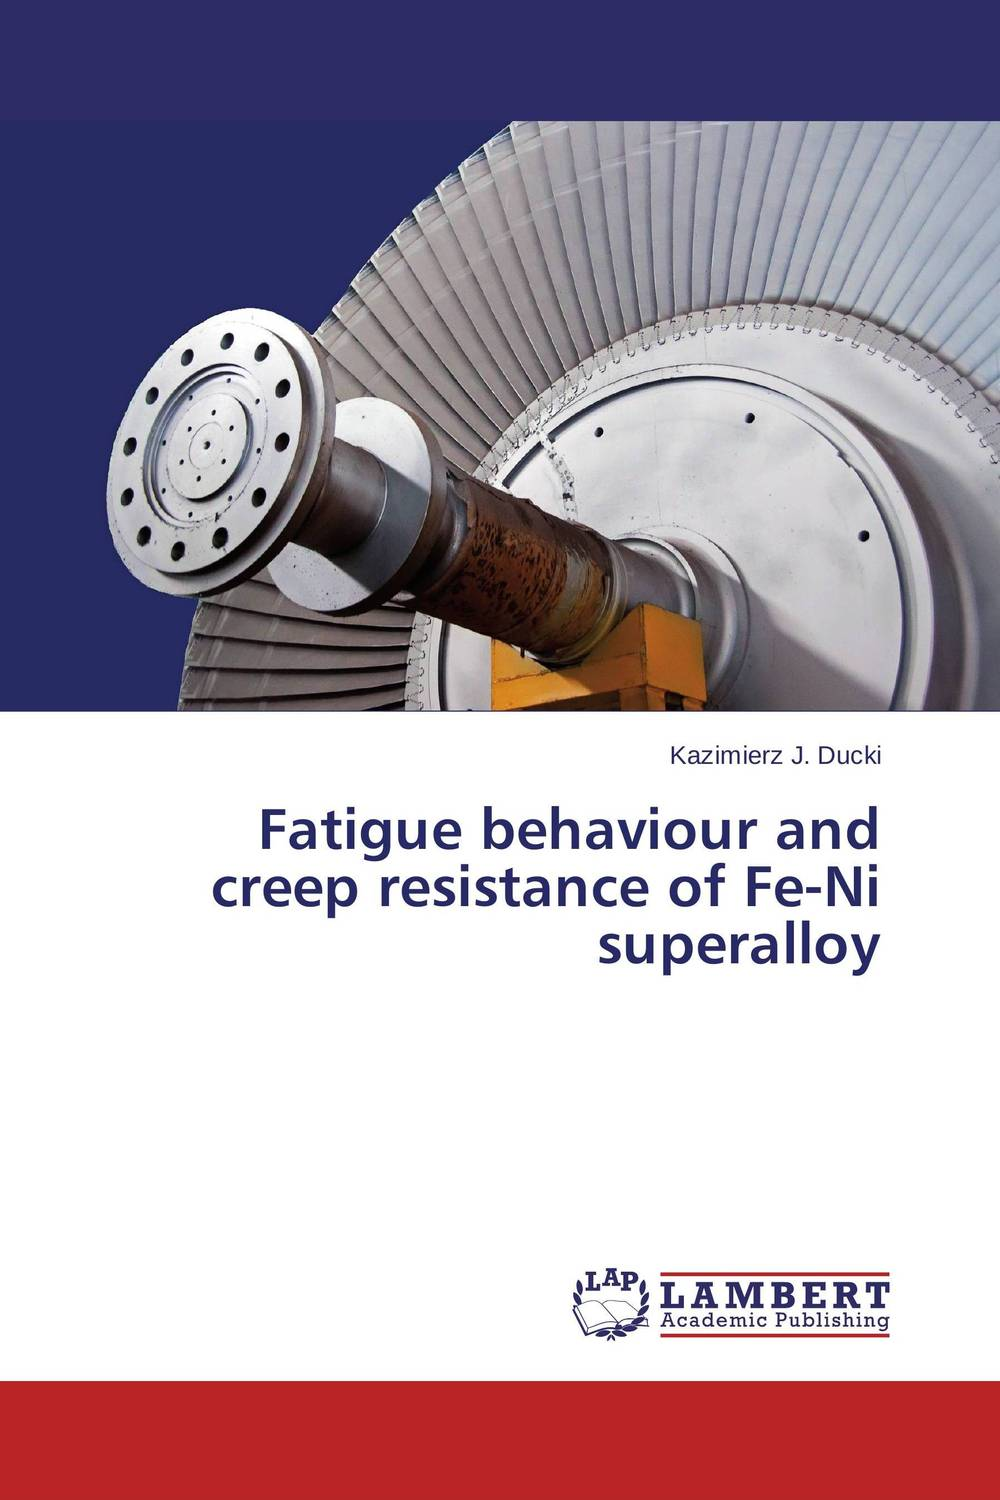 все цены на Fatigue behaviour and creep resistance of Fe-Ni superalloy в интернете